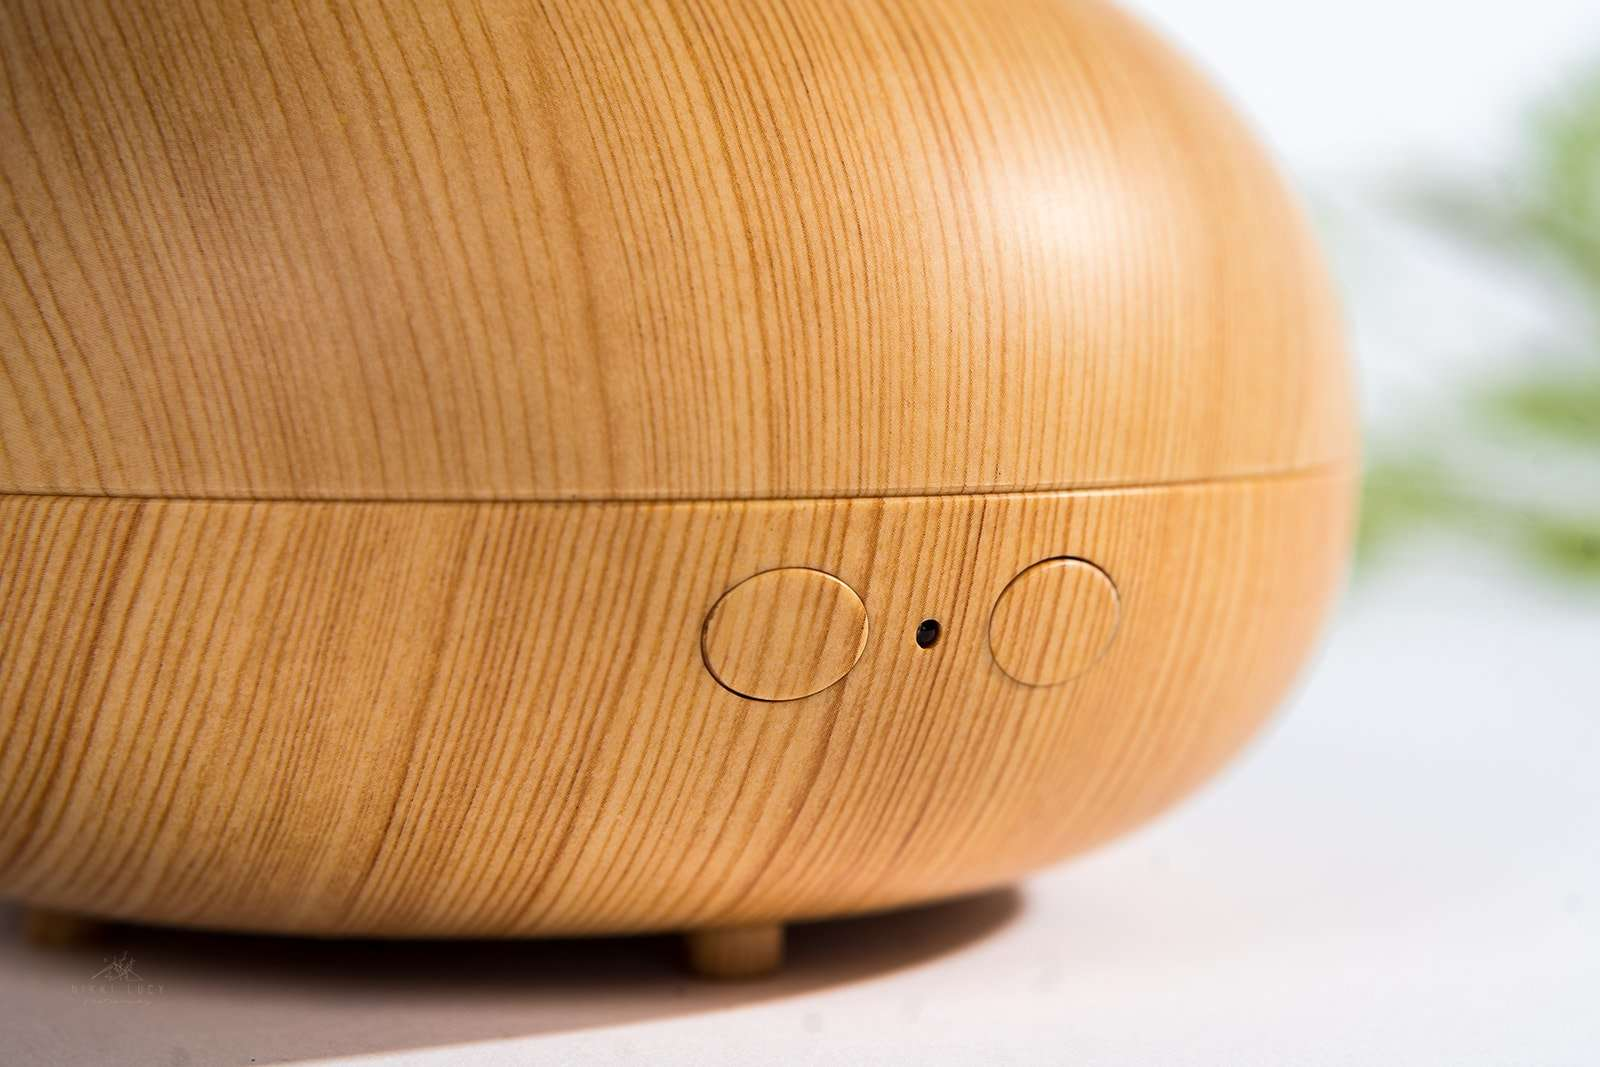 aroma diffuser knoppen